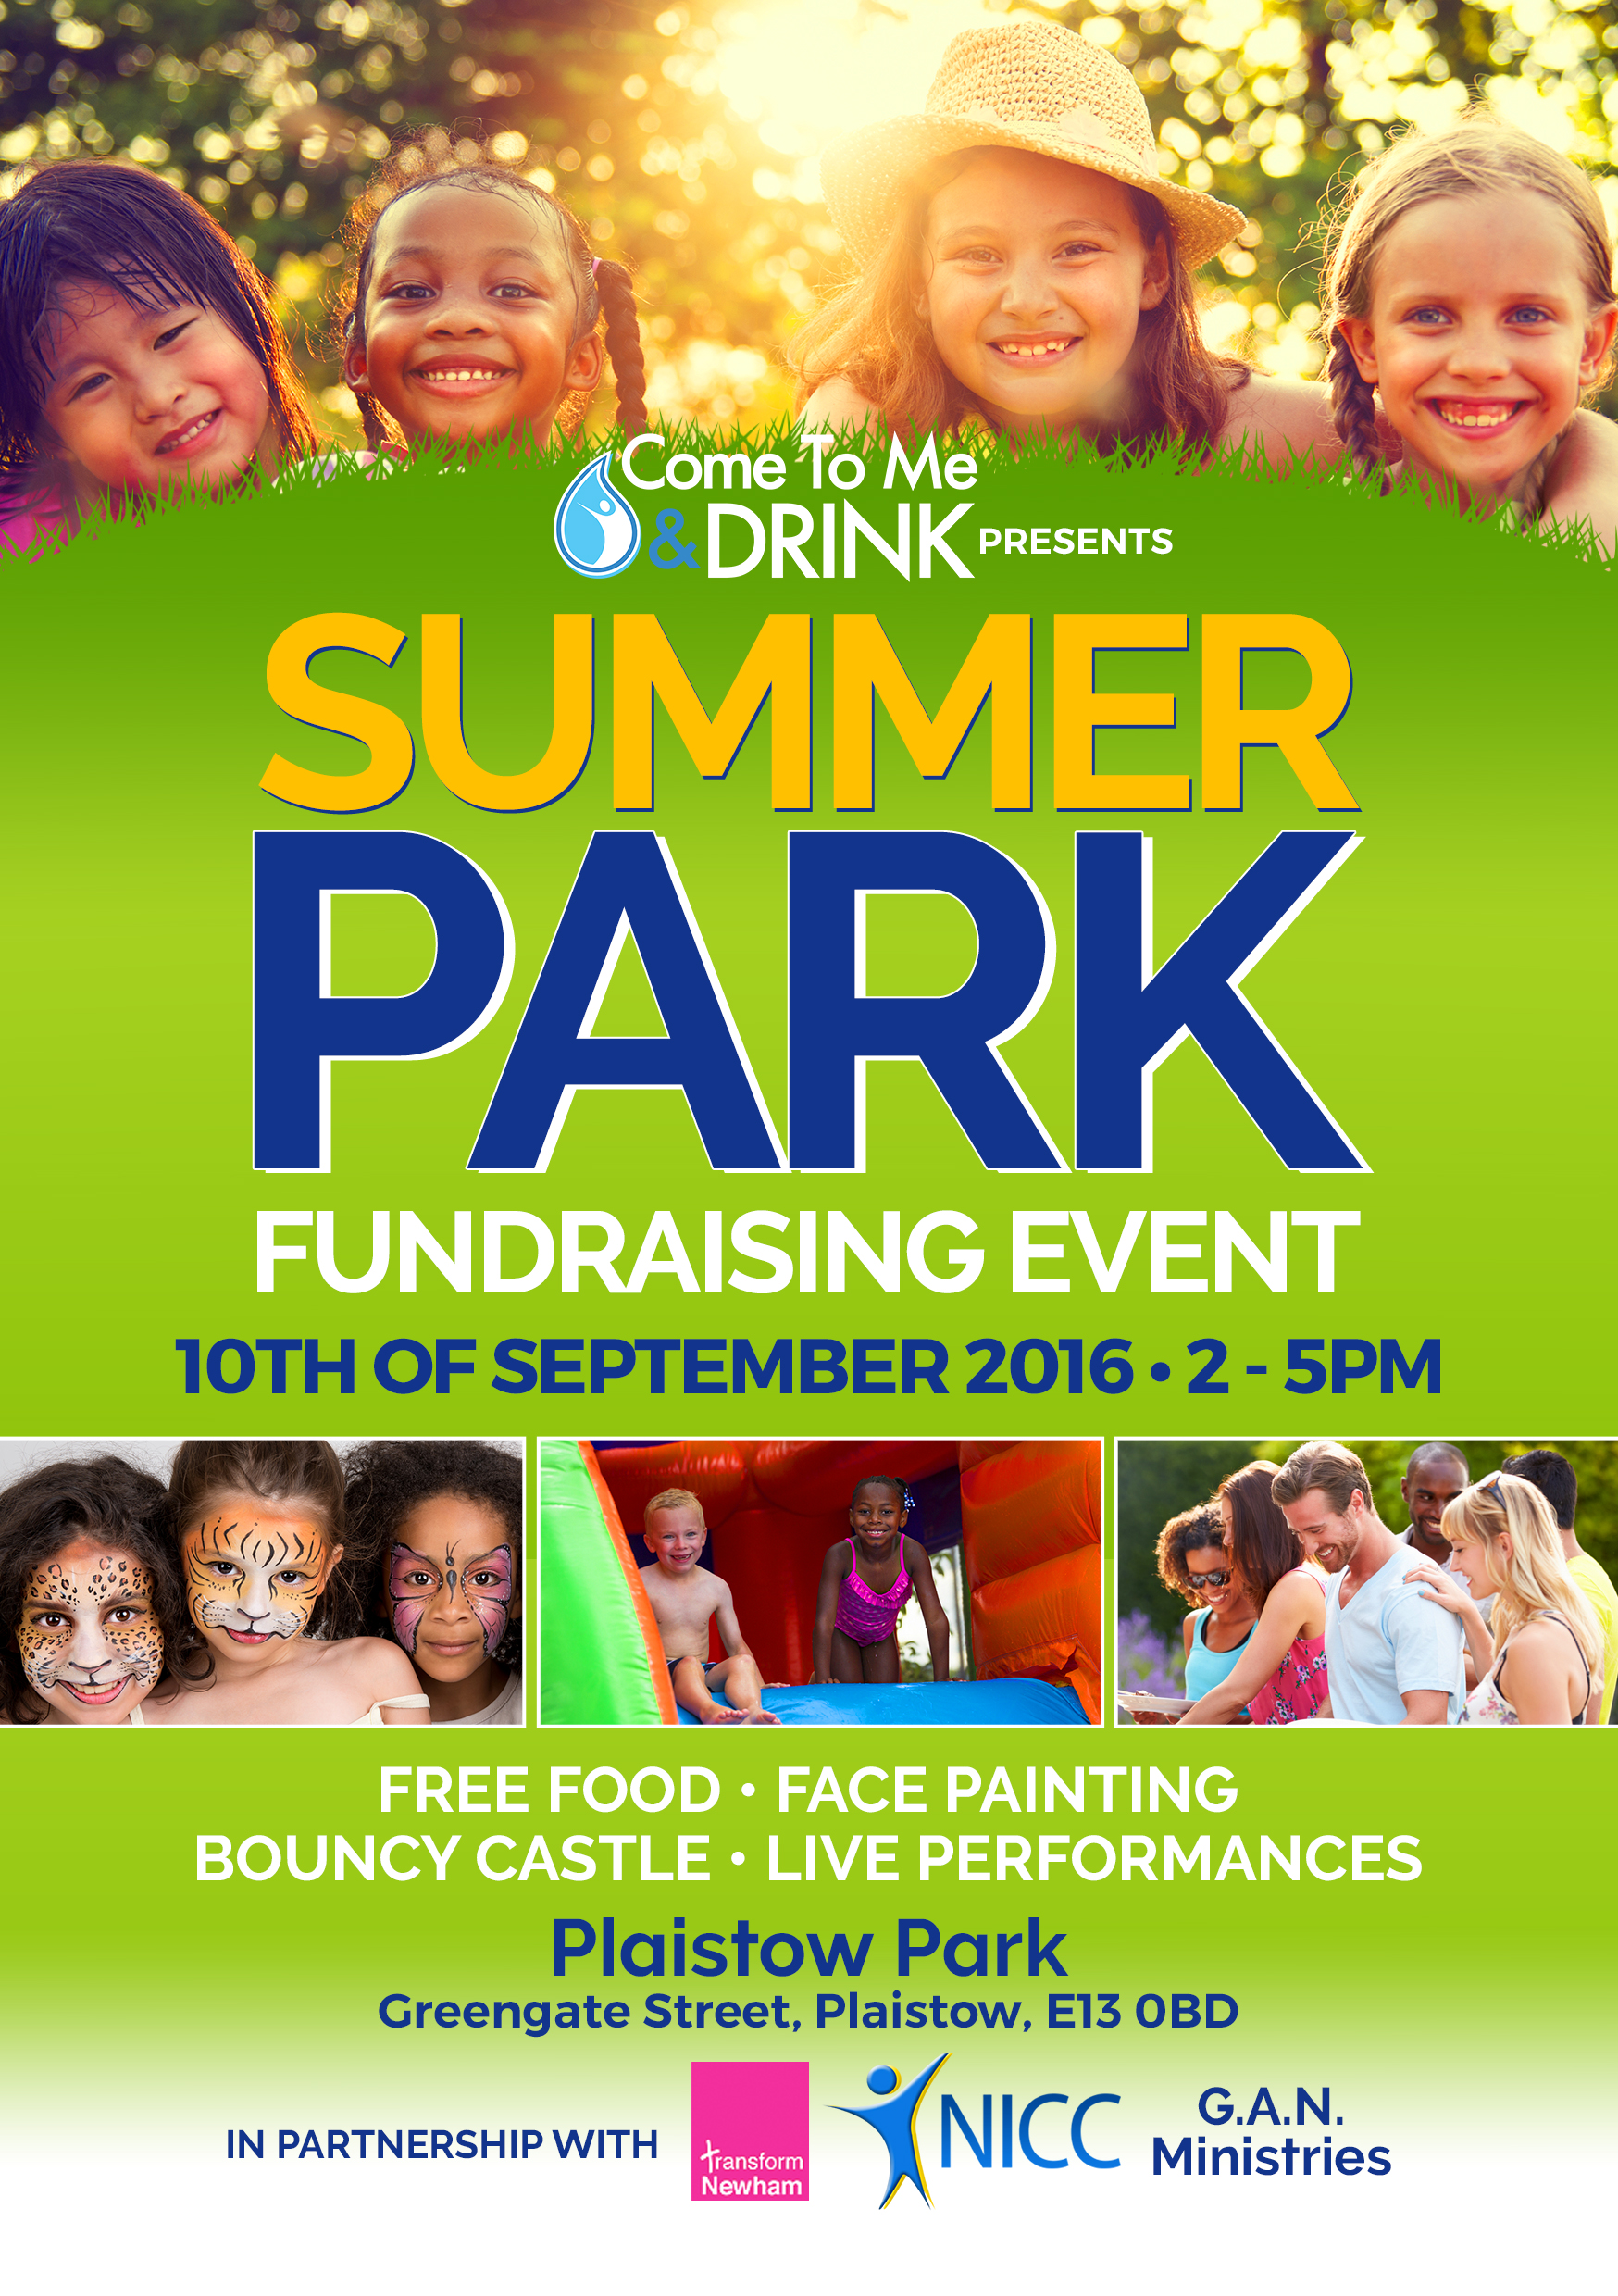 http://yournicc.com/how-to-extend-your-summer-days/ NICC Summer Park Event